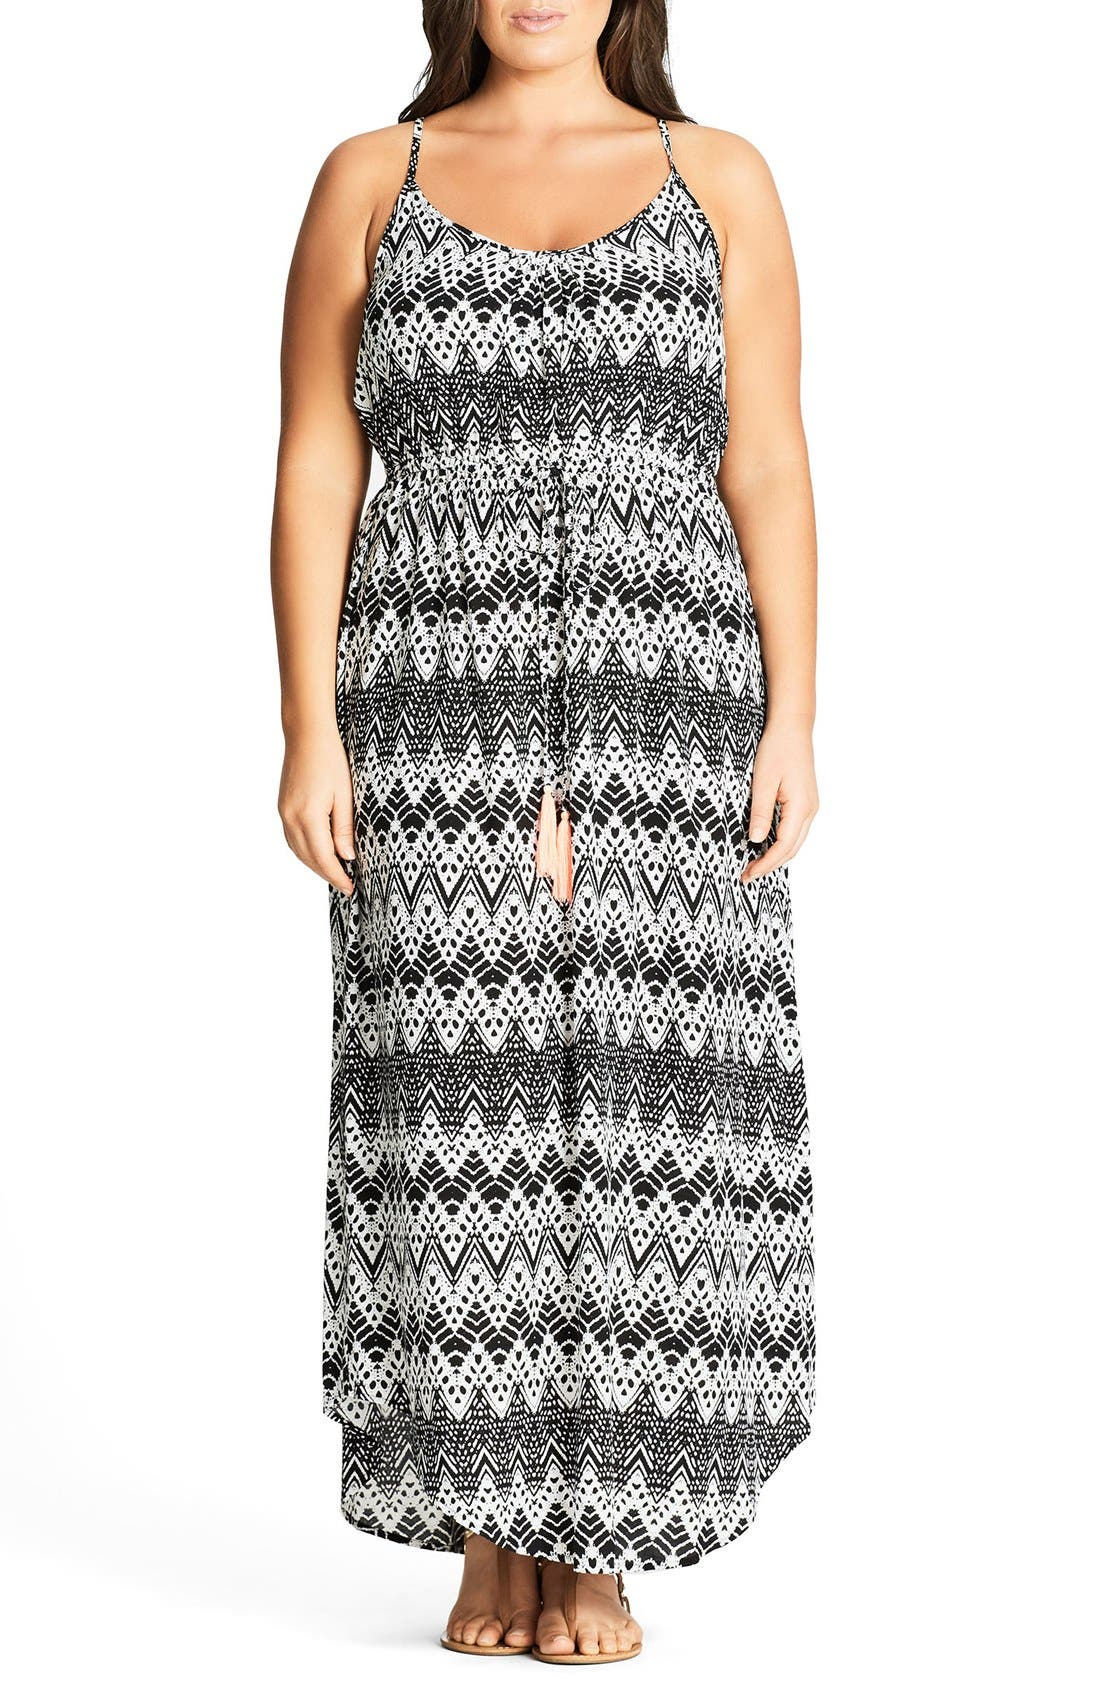 CITY CHIC Mono Print Maxi Dress